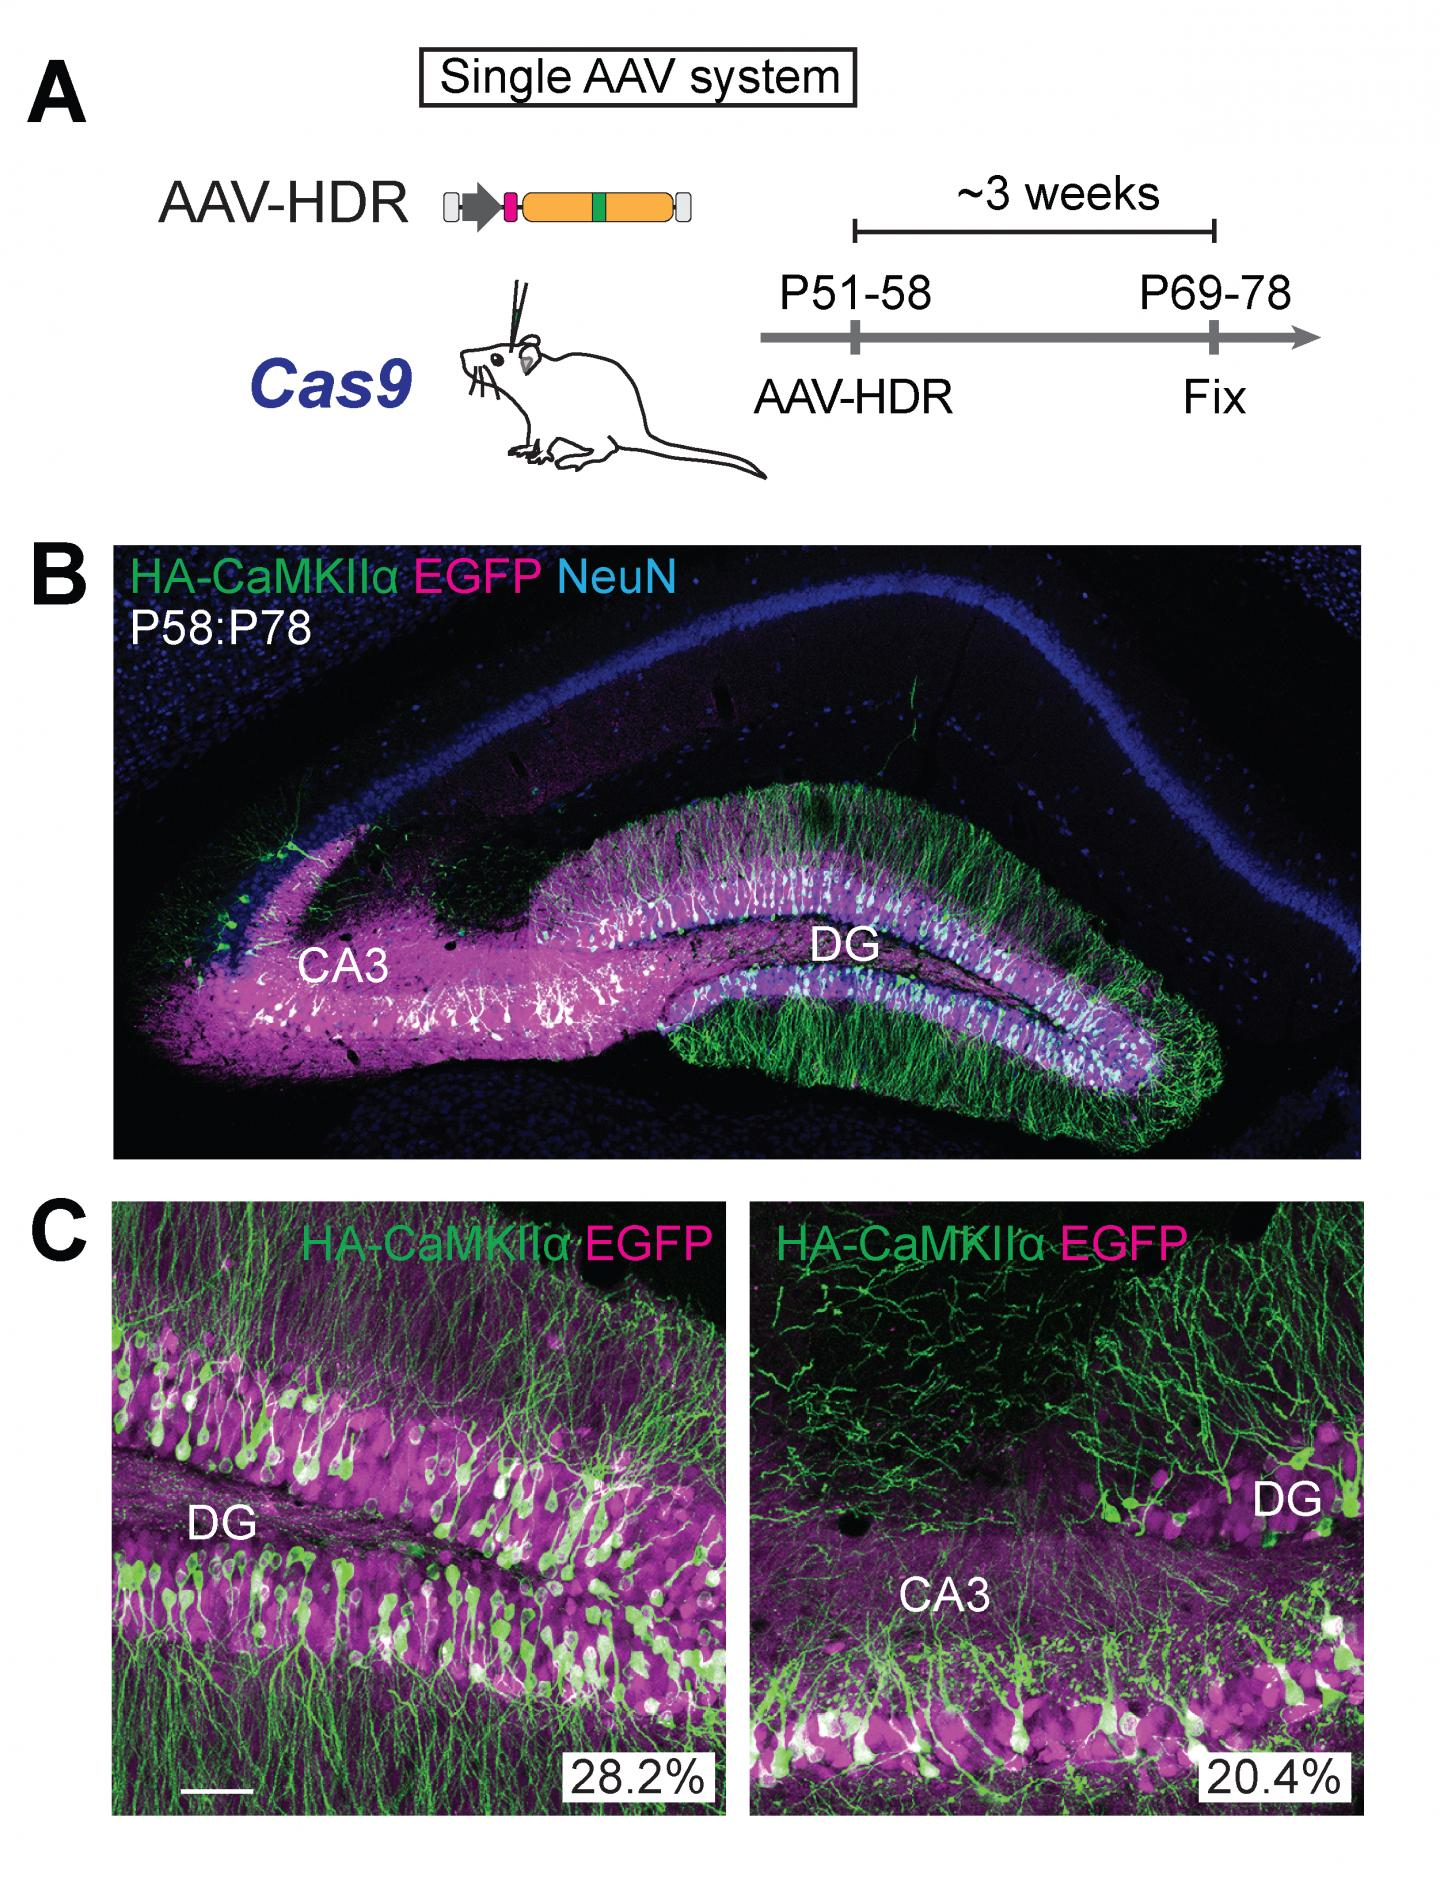 (A) Schematic illustrations of experiments. (B, C) Confocal microscopic images of coronal brain sections of the hippocampus of Cas9 mice, showing the EGFP fluorescence (B, C, magenta), immunoreactivities for NeuN (B, blue) and the HA tag (B, C, green) fused to the N-terminus of endogenous CaMKIIα. / Credit: Max Planck Florida Institute for Neuroscience